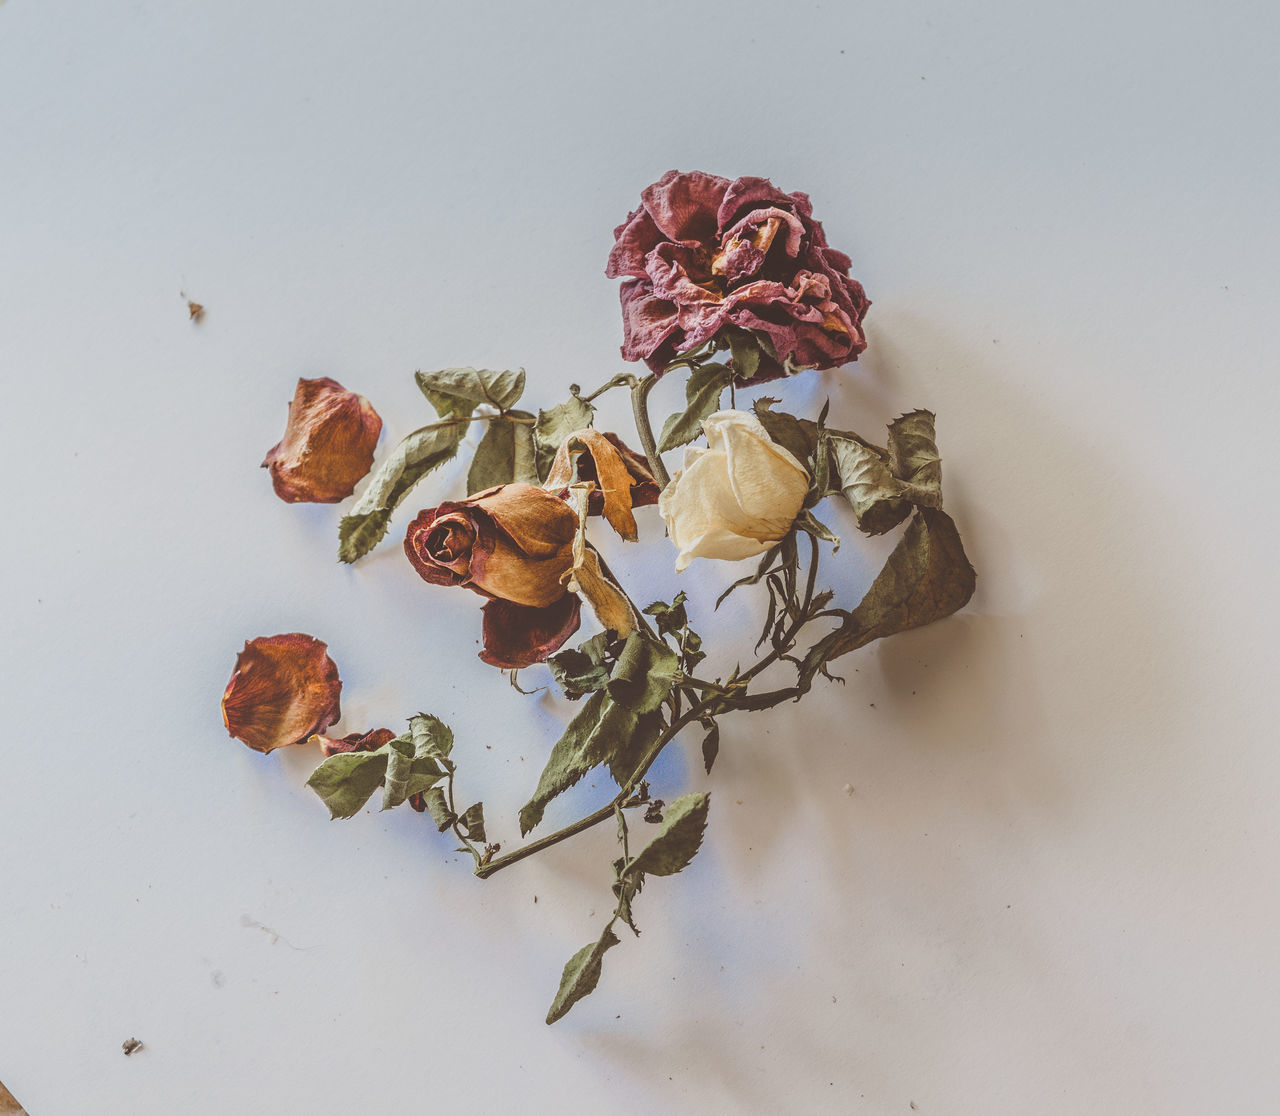 flower, rose - flower, white background, petal, studio shot, fragility, nature, no people, wilted plant, flower head, beauty in nature, dried plant, freshness, close-up, indoors, day